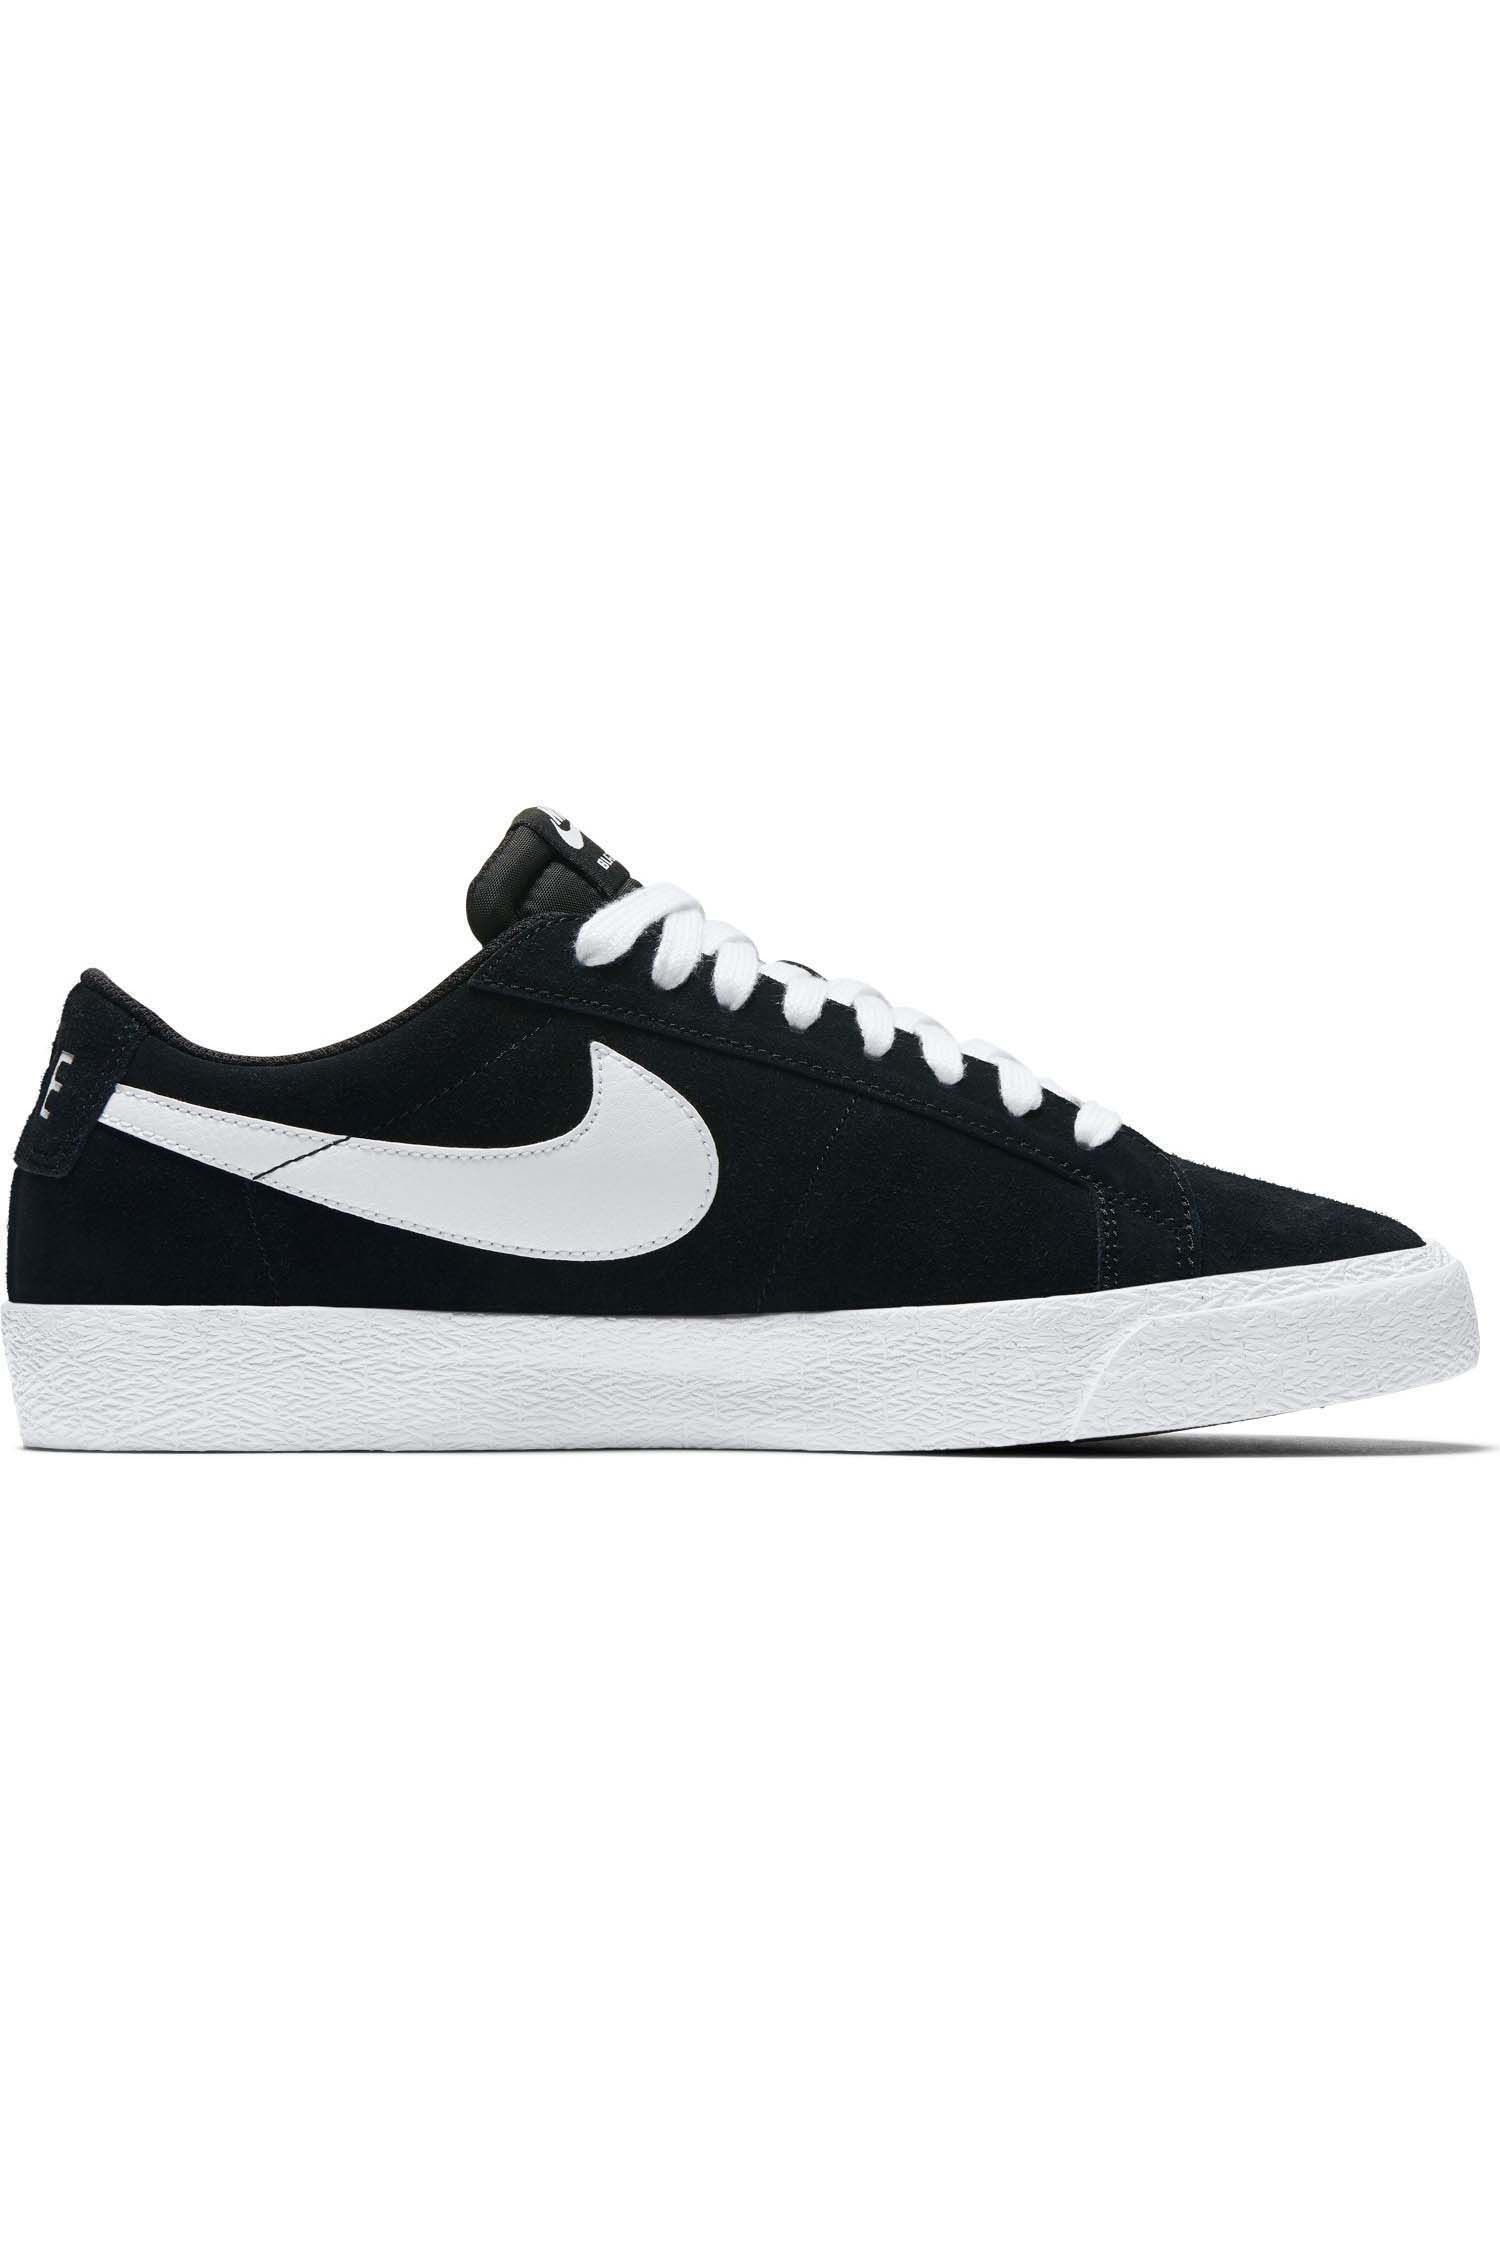 Tenis Nike Sb ZOOM BLAZER LOW Black/White-Gum Lt Brown